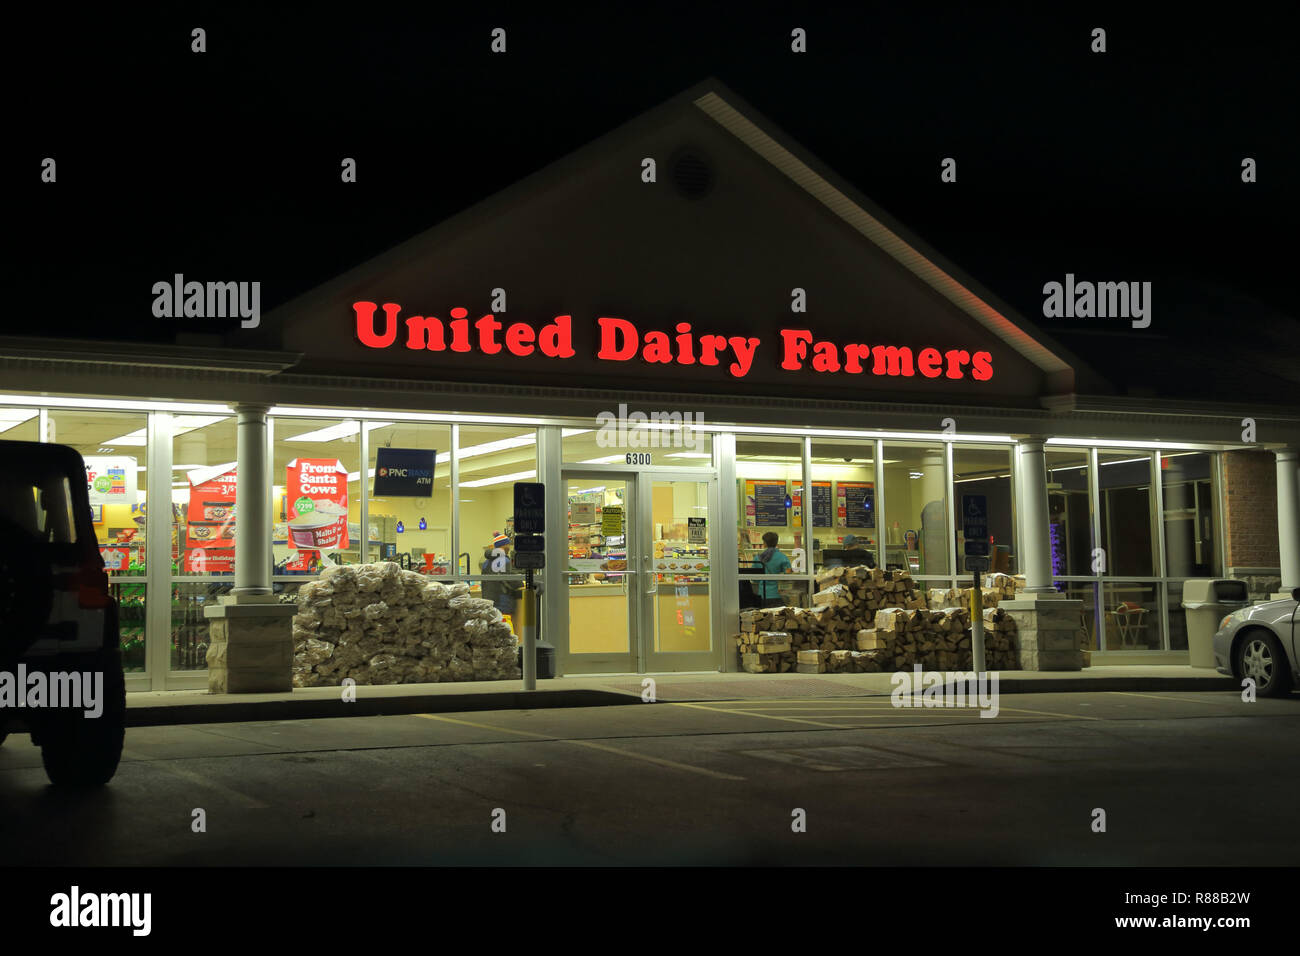 Cincinnati, Ohio / USA - Dec. 28, 2016: A storefront of the Ohio-based United Dairy Farmers aka UDF convenience store chain is shown in the evening. - Stock Image